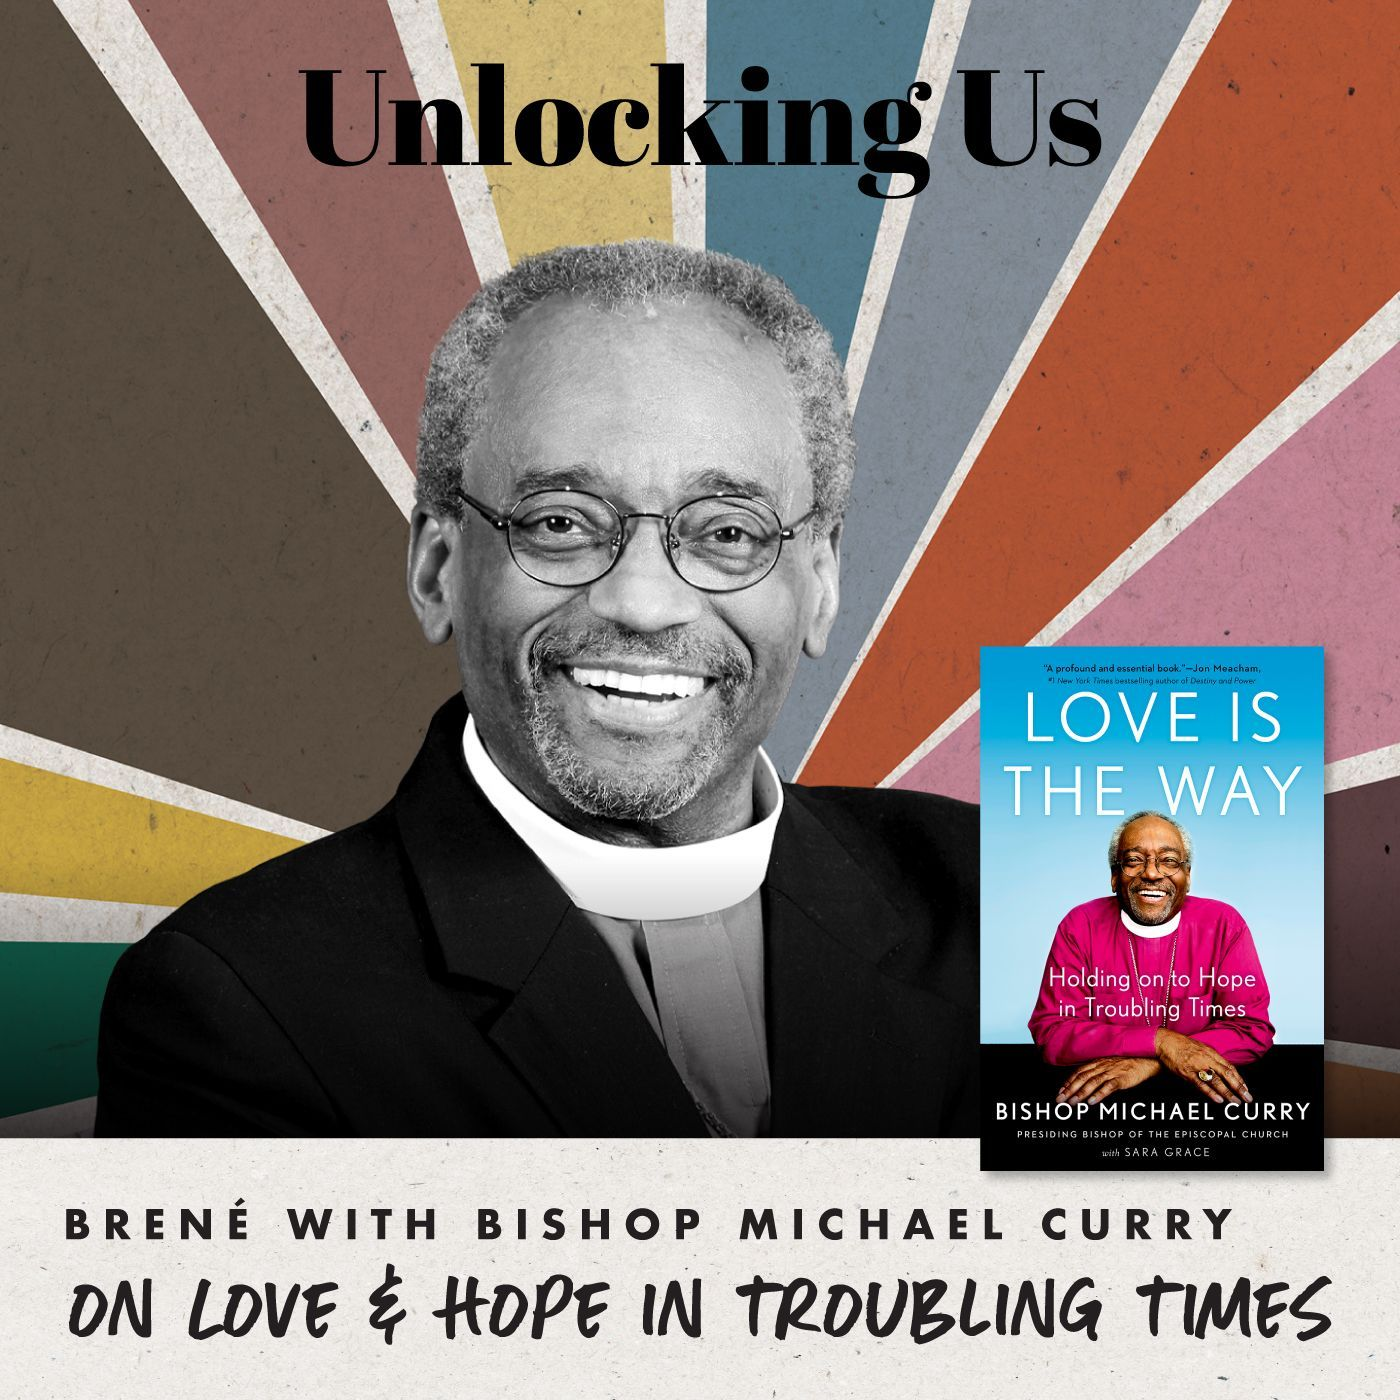 Brené with Bishop Michael Curry on Love & Hope in Troubling Times